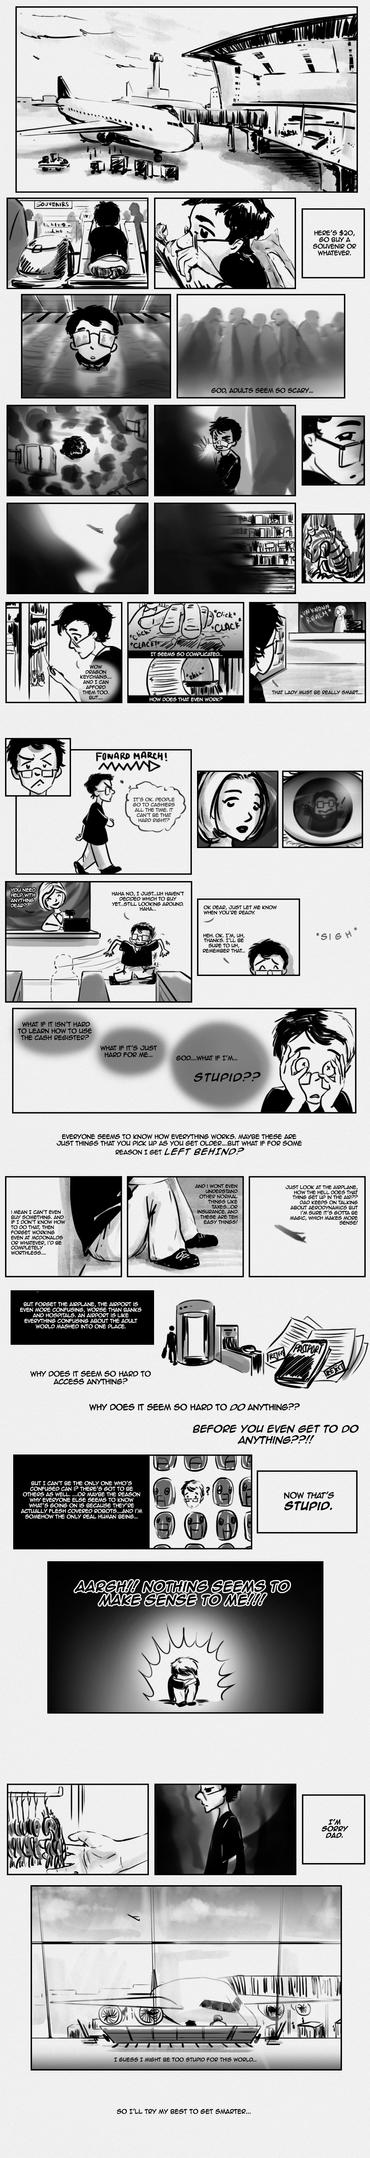 Shuun Webcomic - Airport by Zorocan